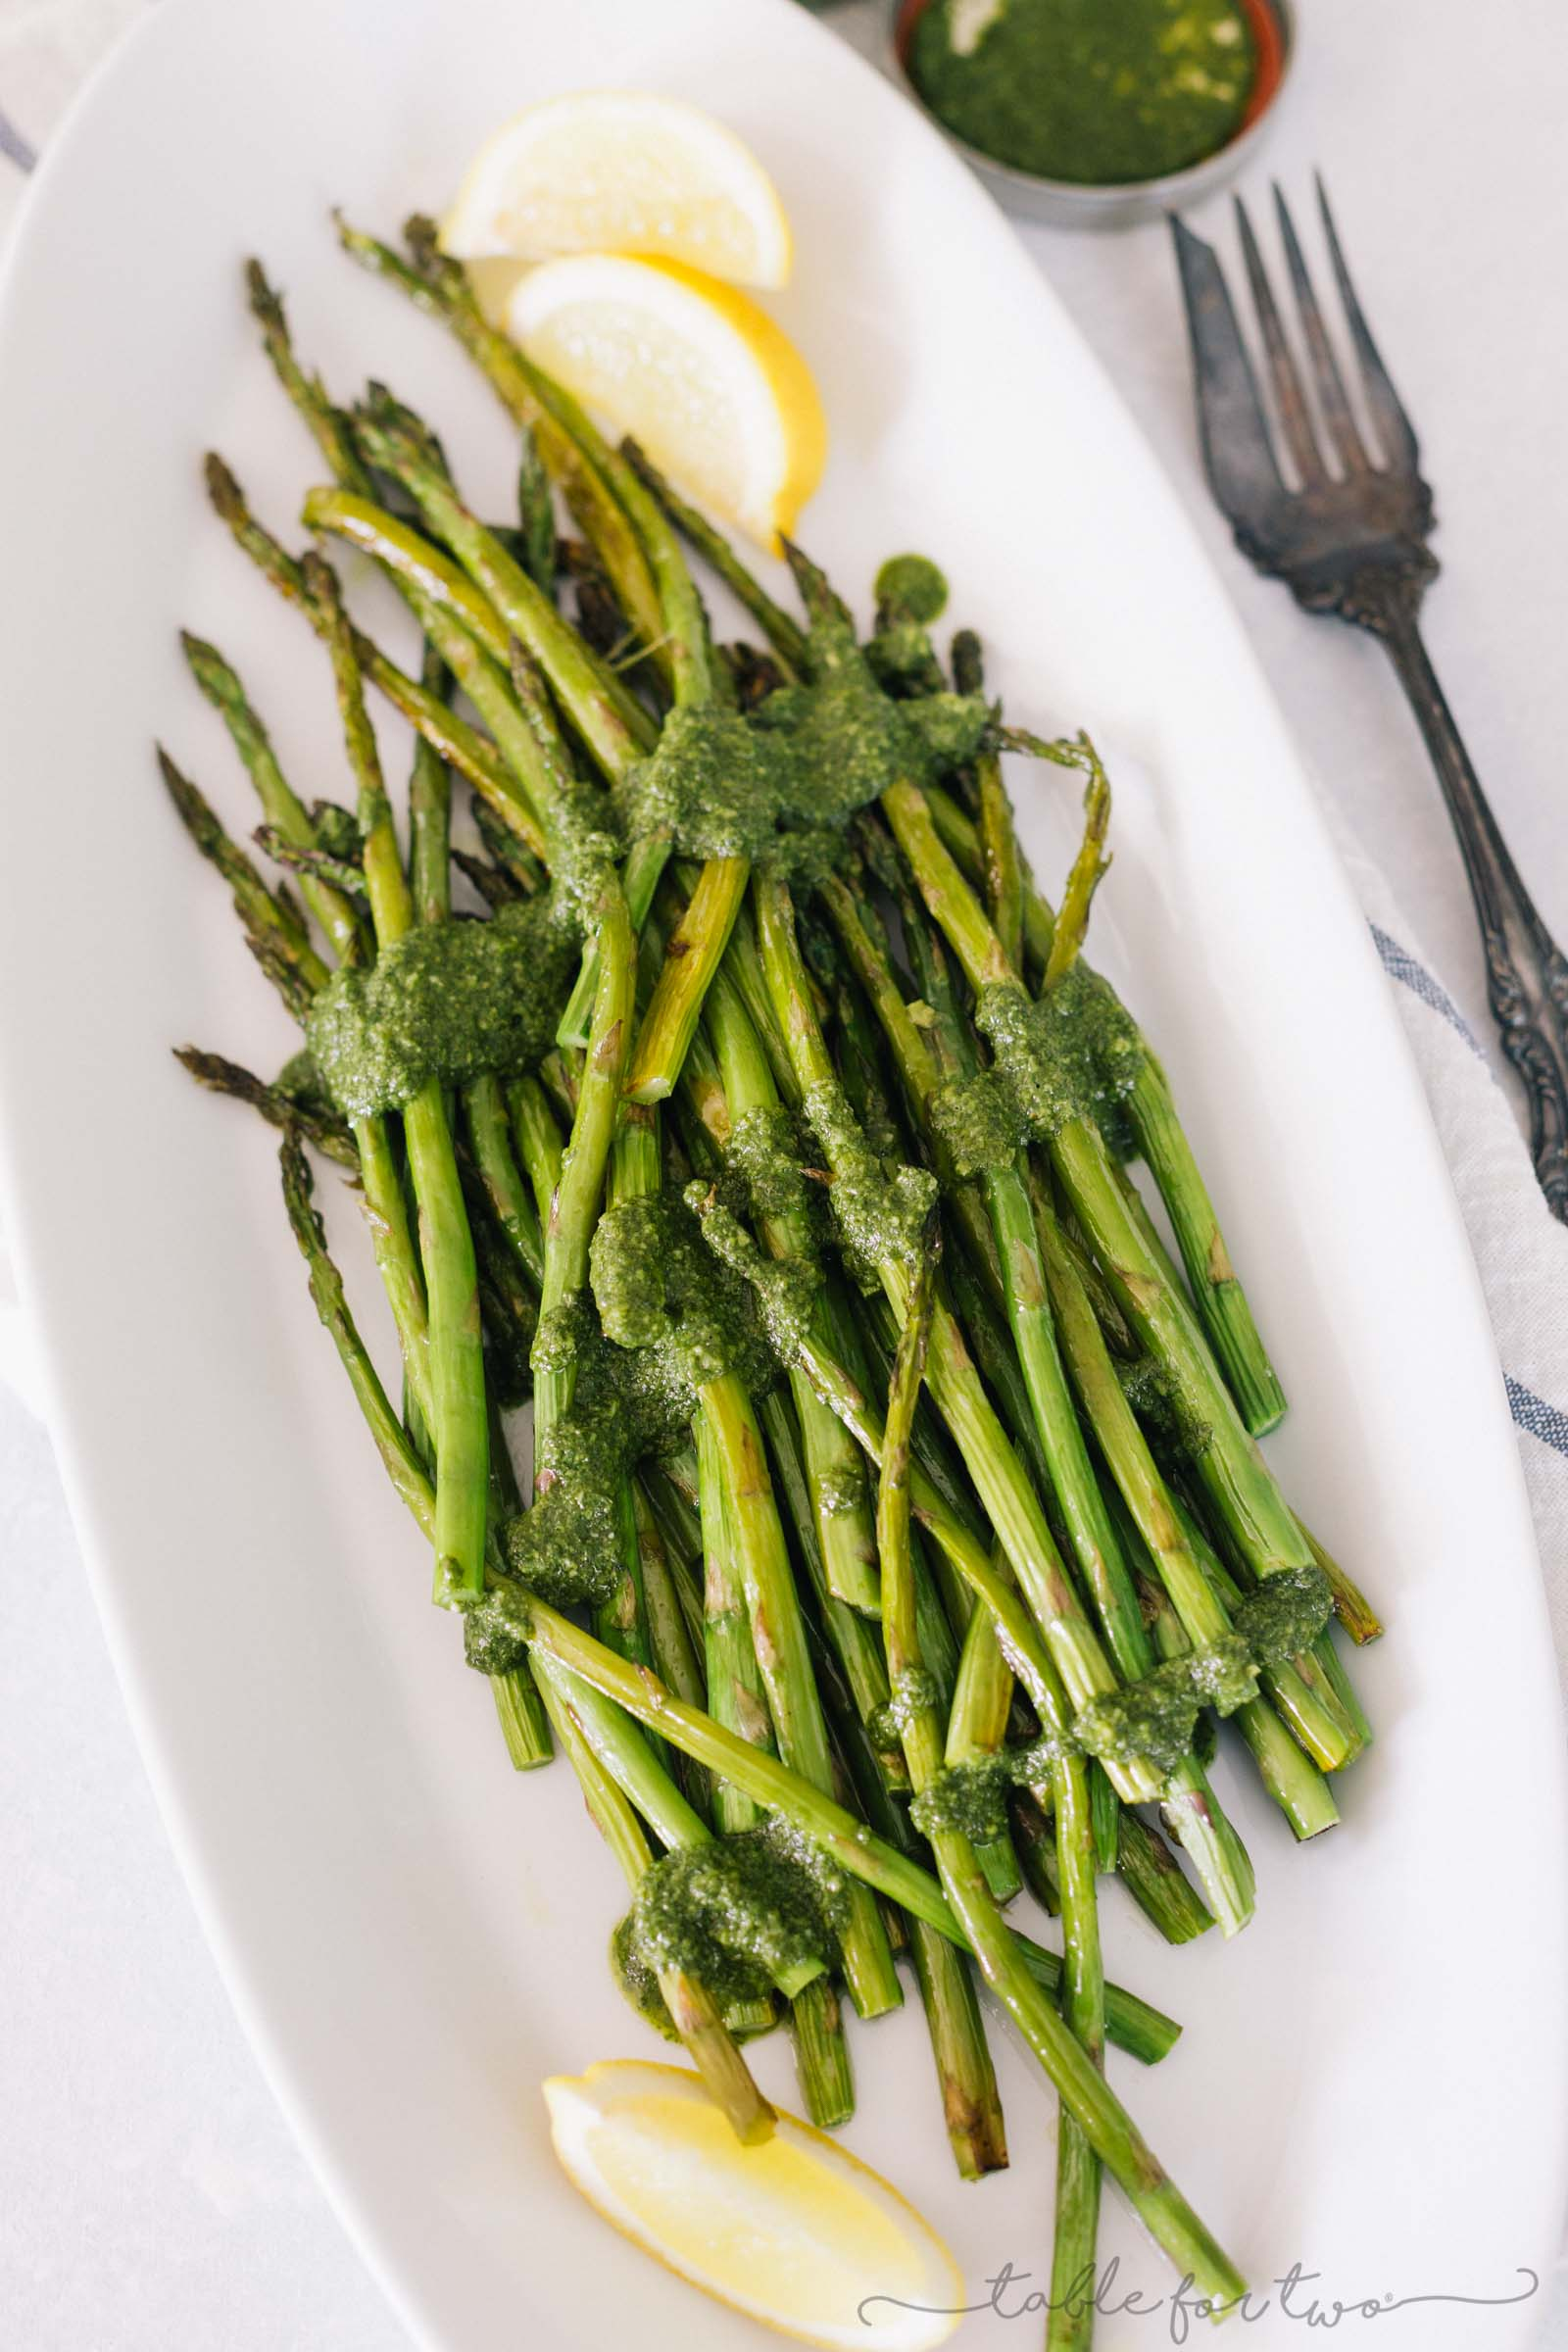 Dress up your asparagus this season with a lemony pesto drizzled all over! This roasted lemony pesto asparagus will be a new favorite side dish!